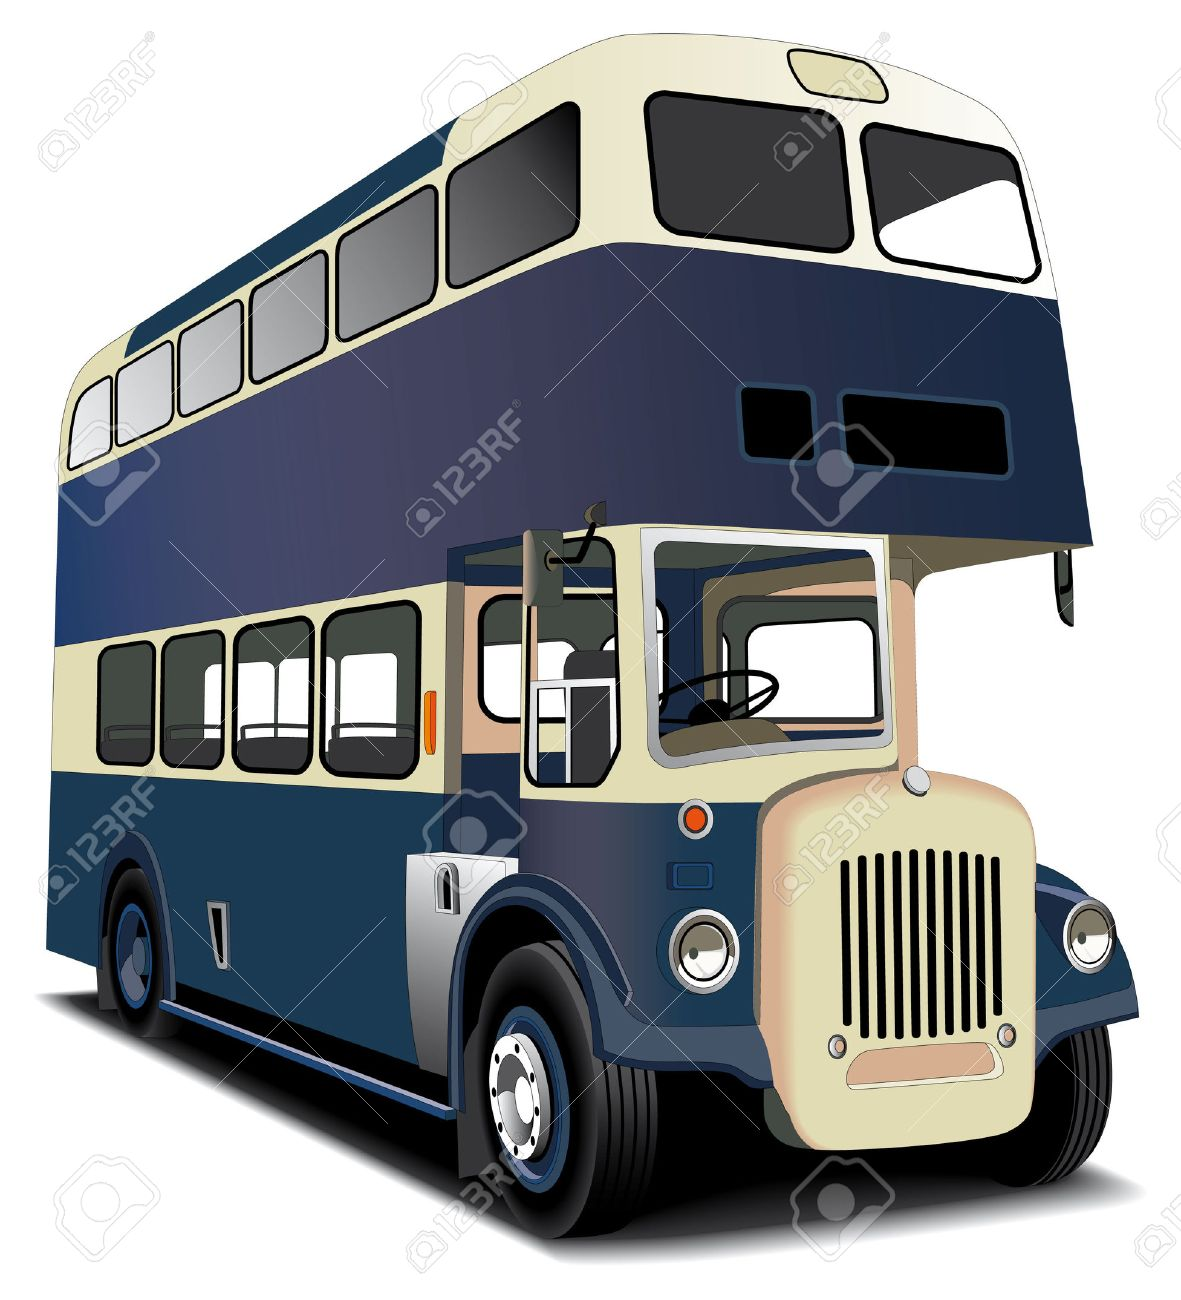 English double decker bus isolated on white. File contains gradients and blends gradient and blends. Stock Vector - 6449111